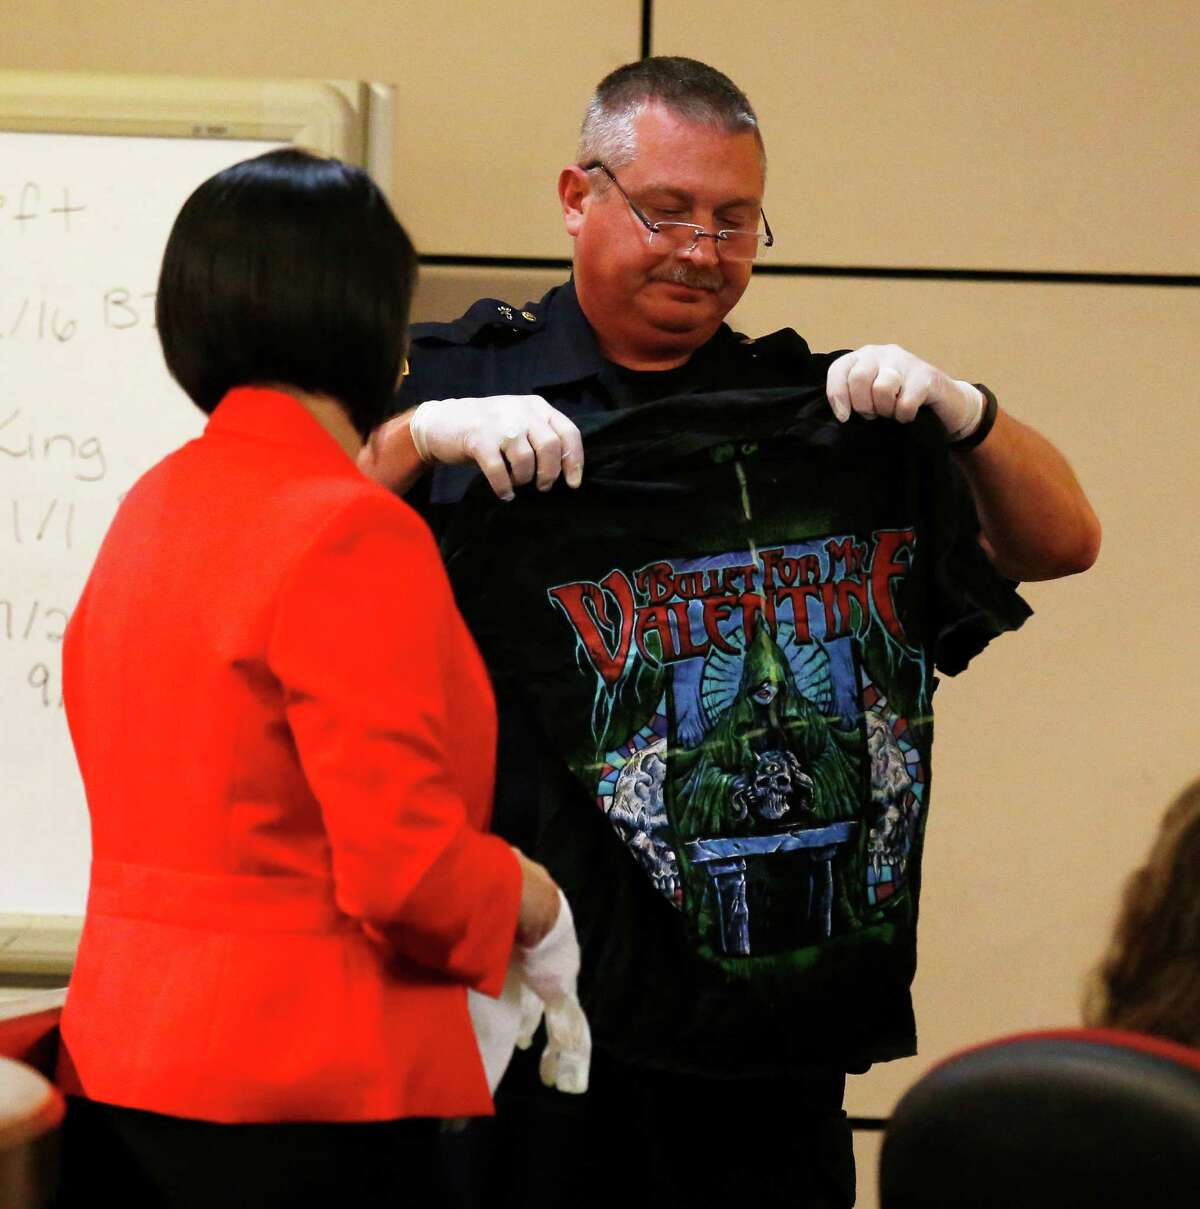 San Antonio Police Sgt. Ricky David Lopez (center) holds up a shirt belonging to murder victim Daniel Lee Cantu during questioning from prosecutor Kimberly Gonzalez during the Anthony Lee Smith murder trial in the 186th State District Court with Judge Jefferson Moore presiding on Thursday, Mar. 10, 2016. Smith is alleged to have shot Cantu and the shirt appeared to be marked with yellow-dashed lines to indicate the entry point of the bullet wound. (Kin Man Hui/San Antonio Express-News)